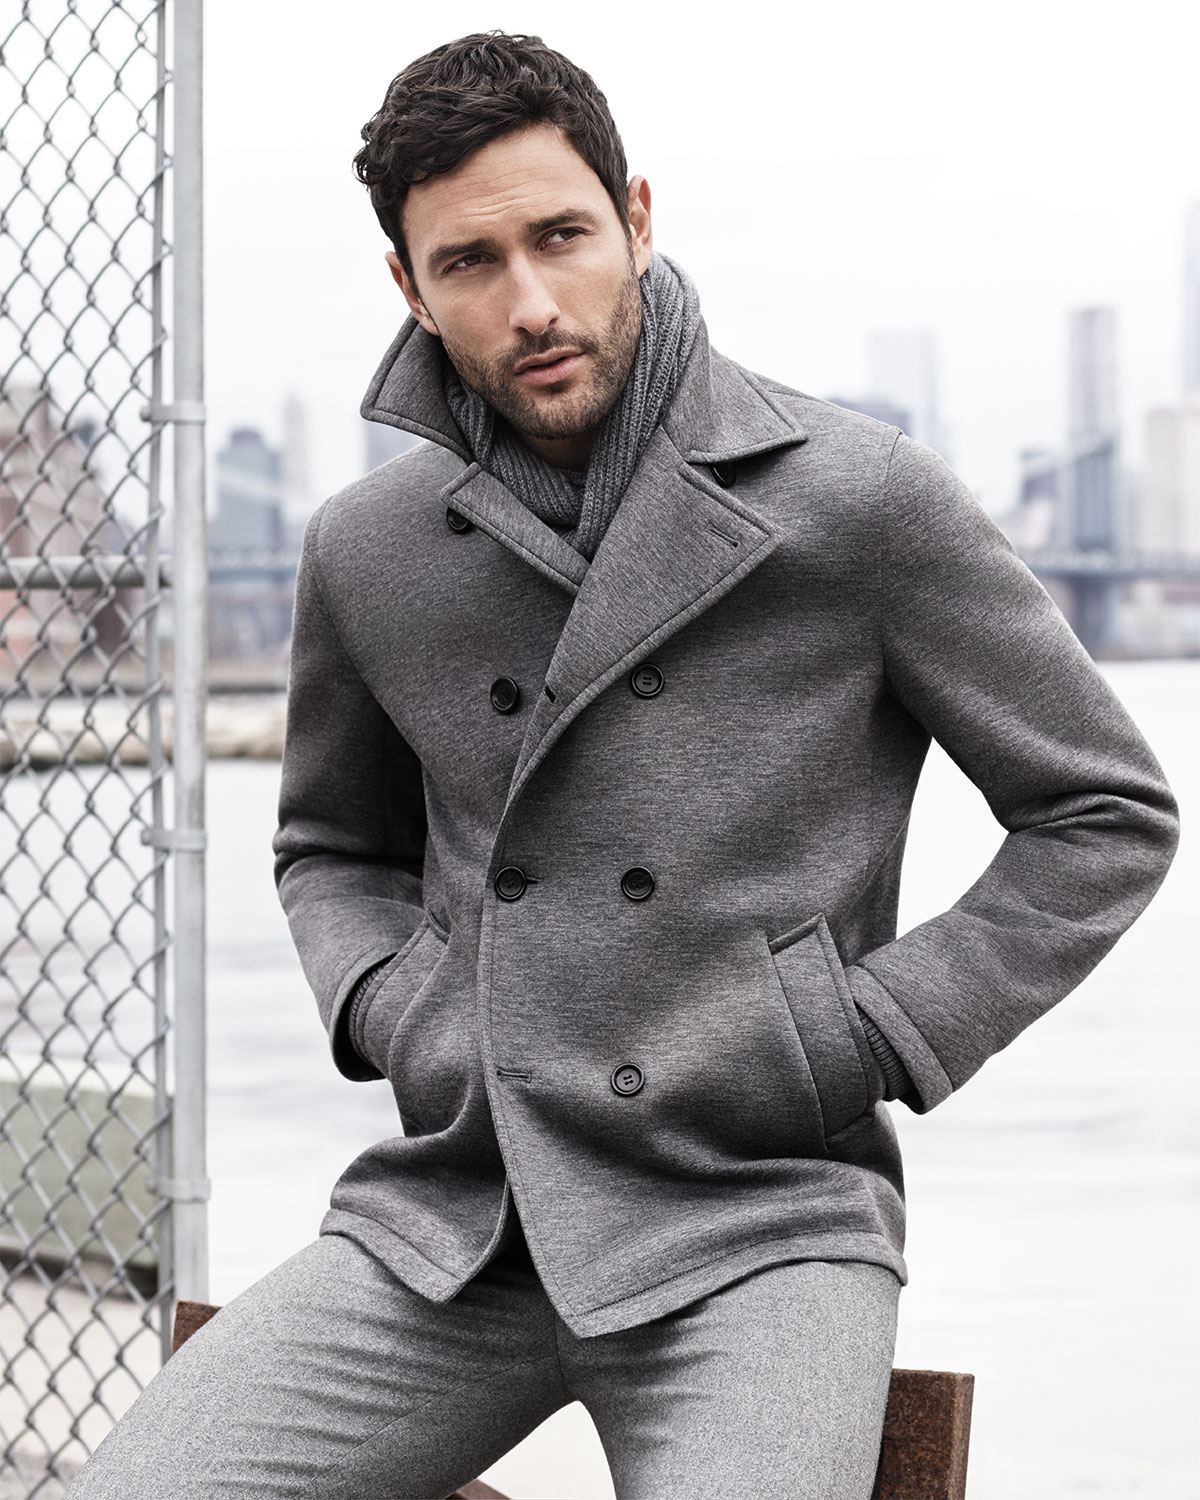 Pea Coat Men Grey | Fashion Women's Coat 2017